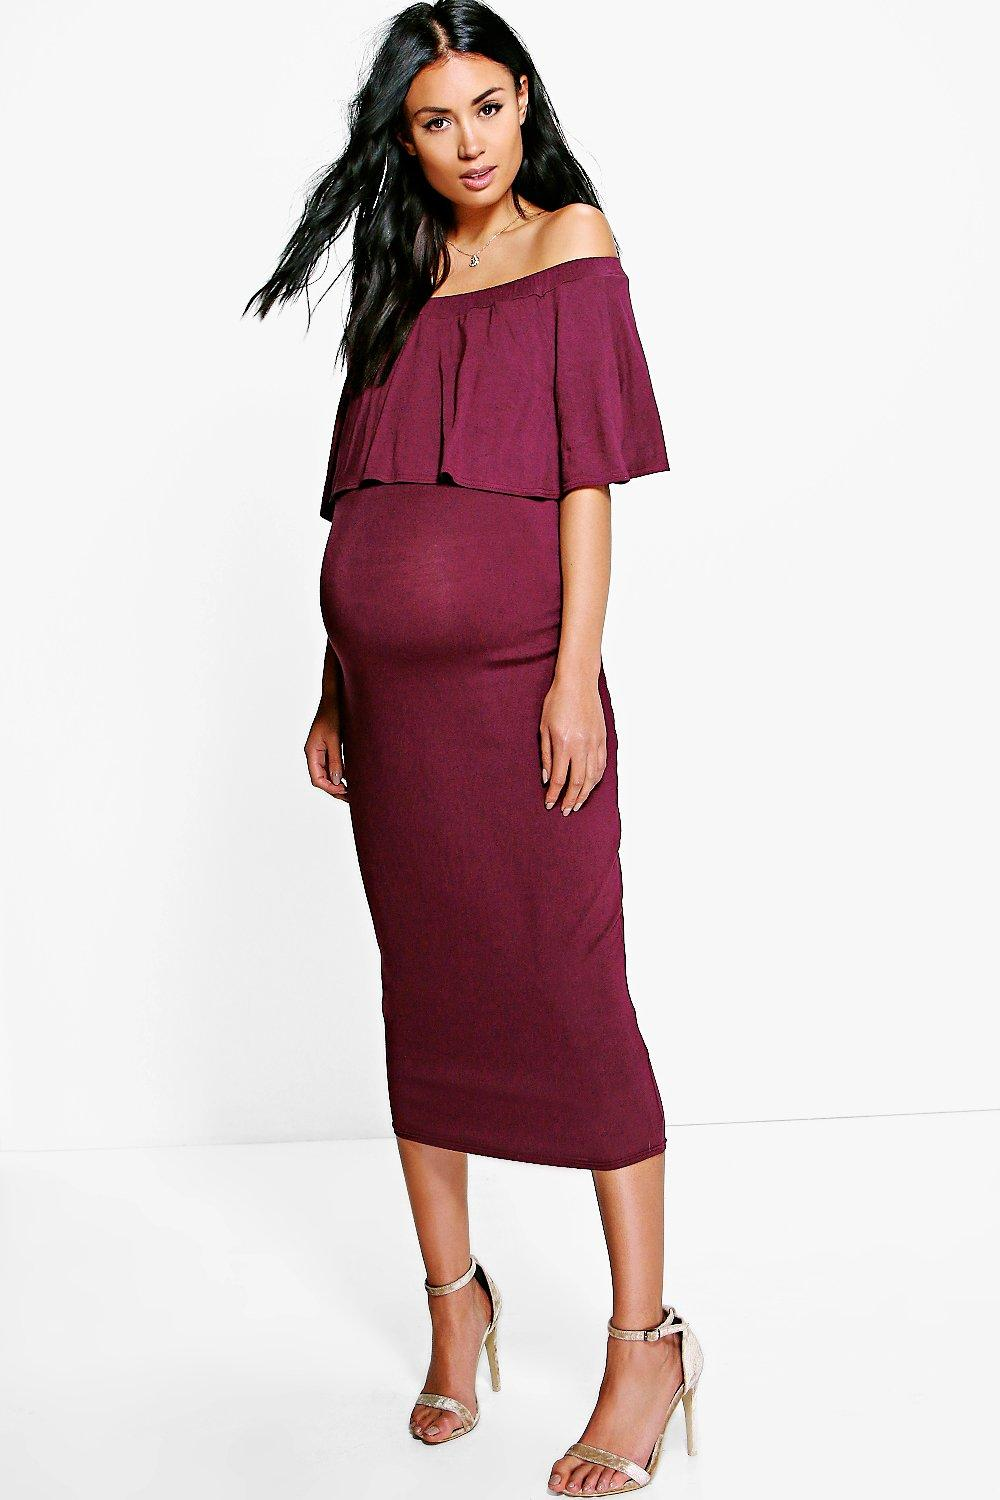 06868ee30fb6 Womens Berry Maternity Off The Shoulder Midi Dress. Hover to zoom